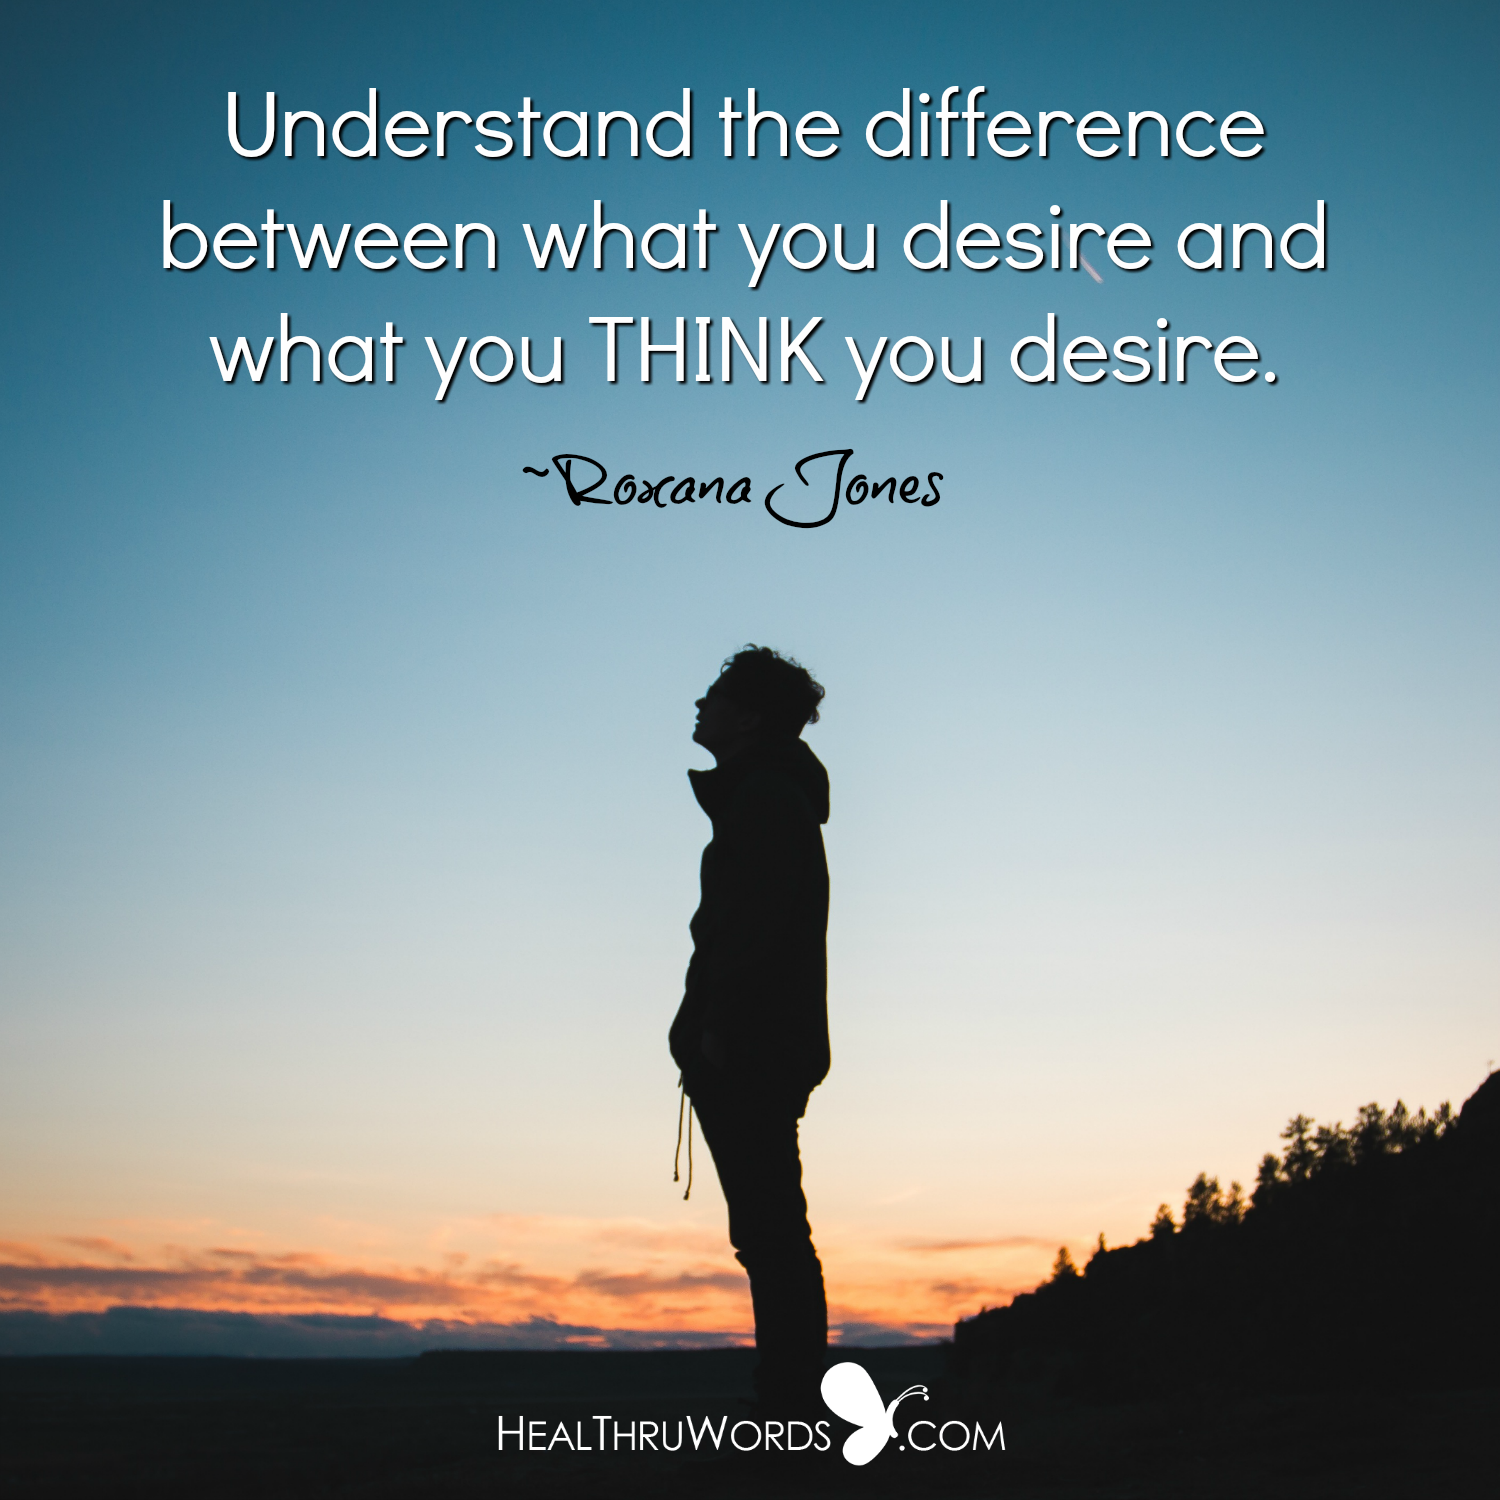 Inspirational Image: Differences